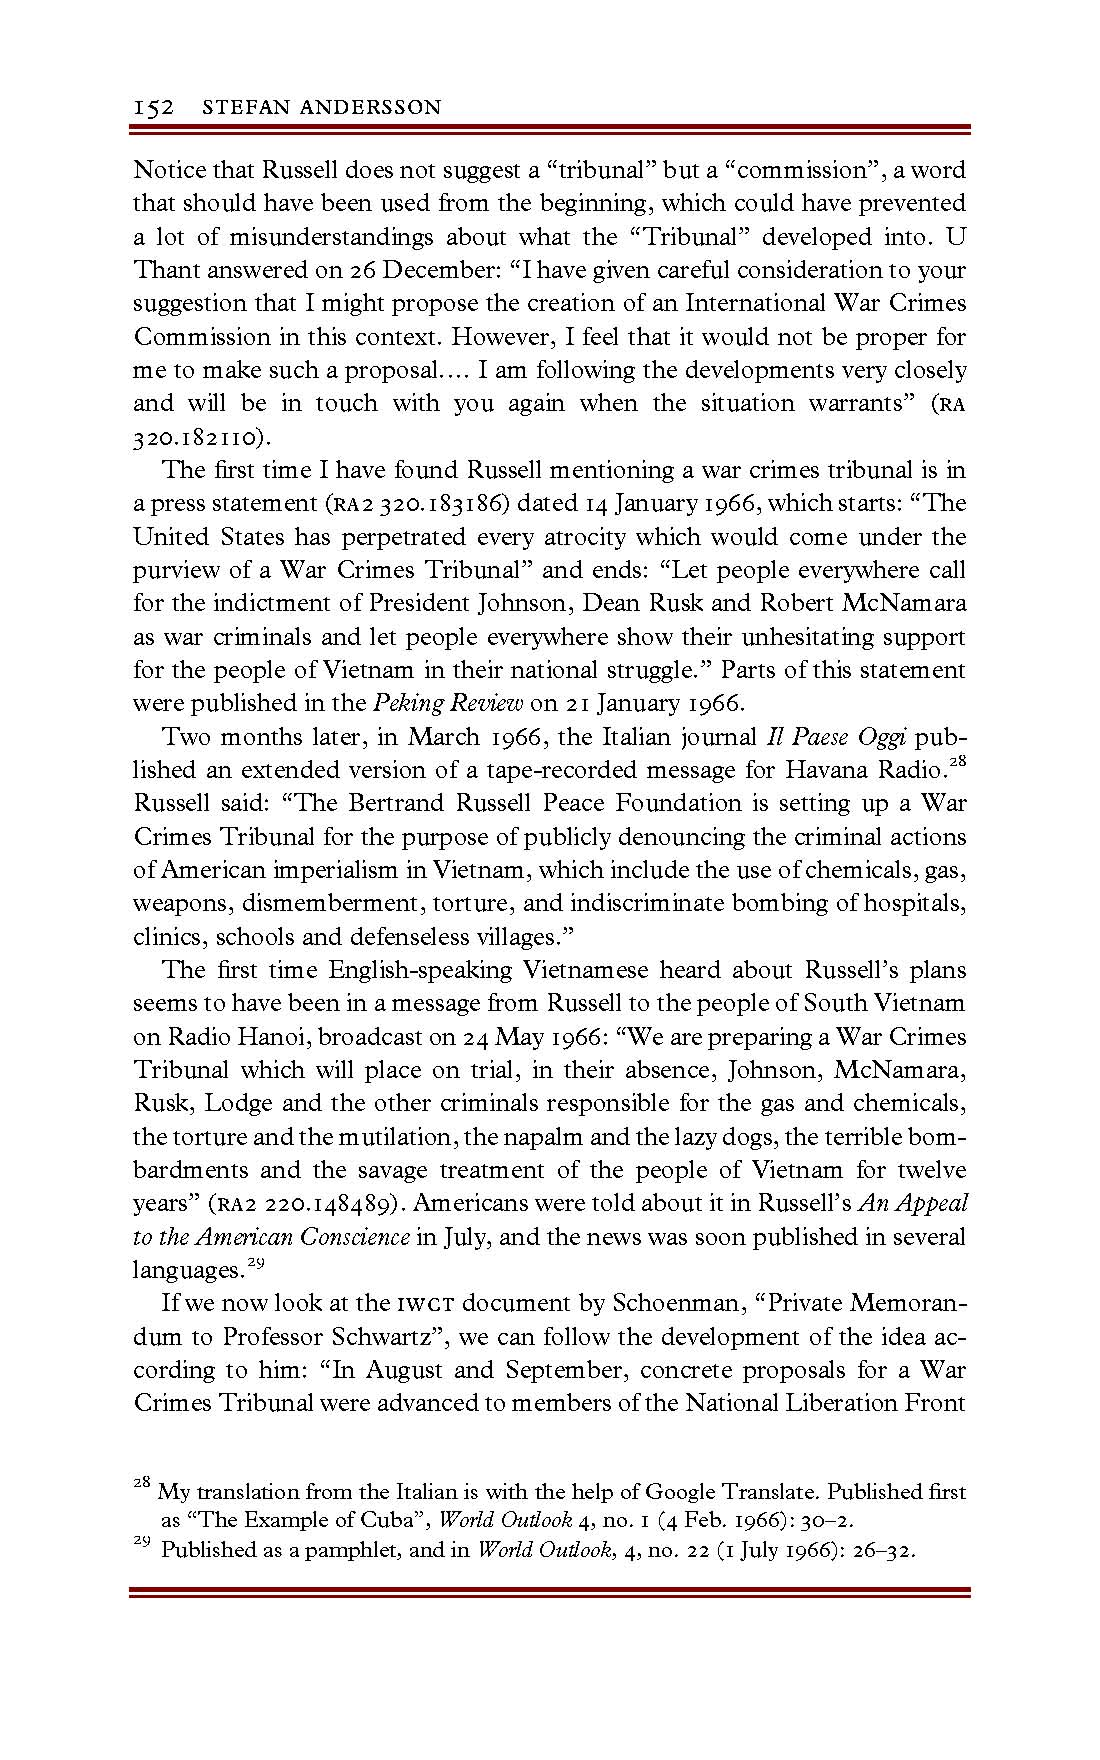 Anderson-- Pages from RJ 3402 050 red-5 (2)-1_Page_18